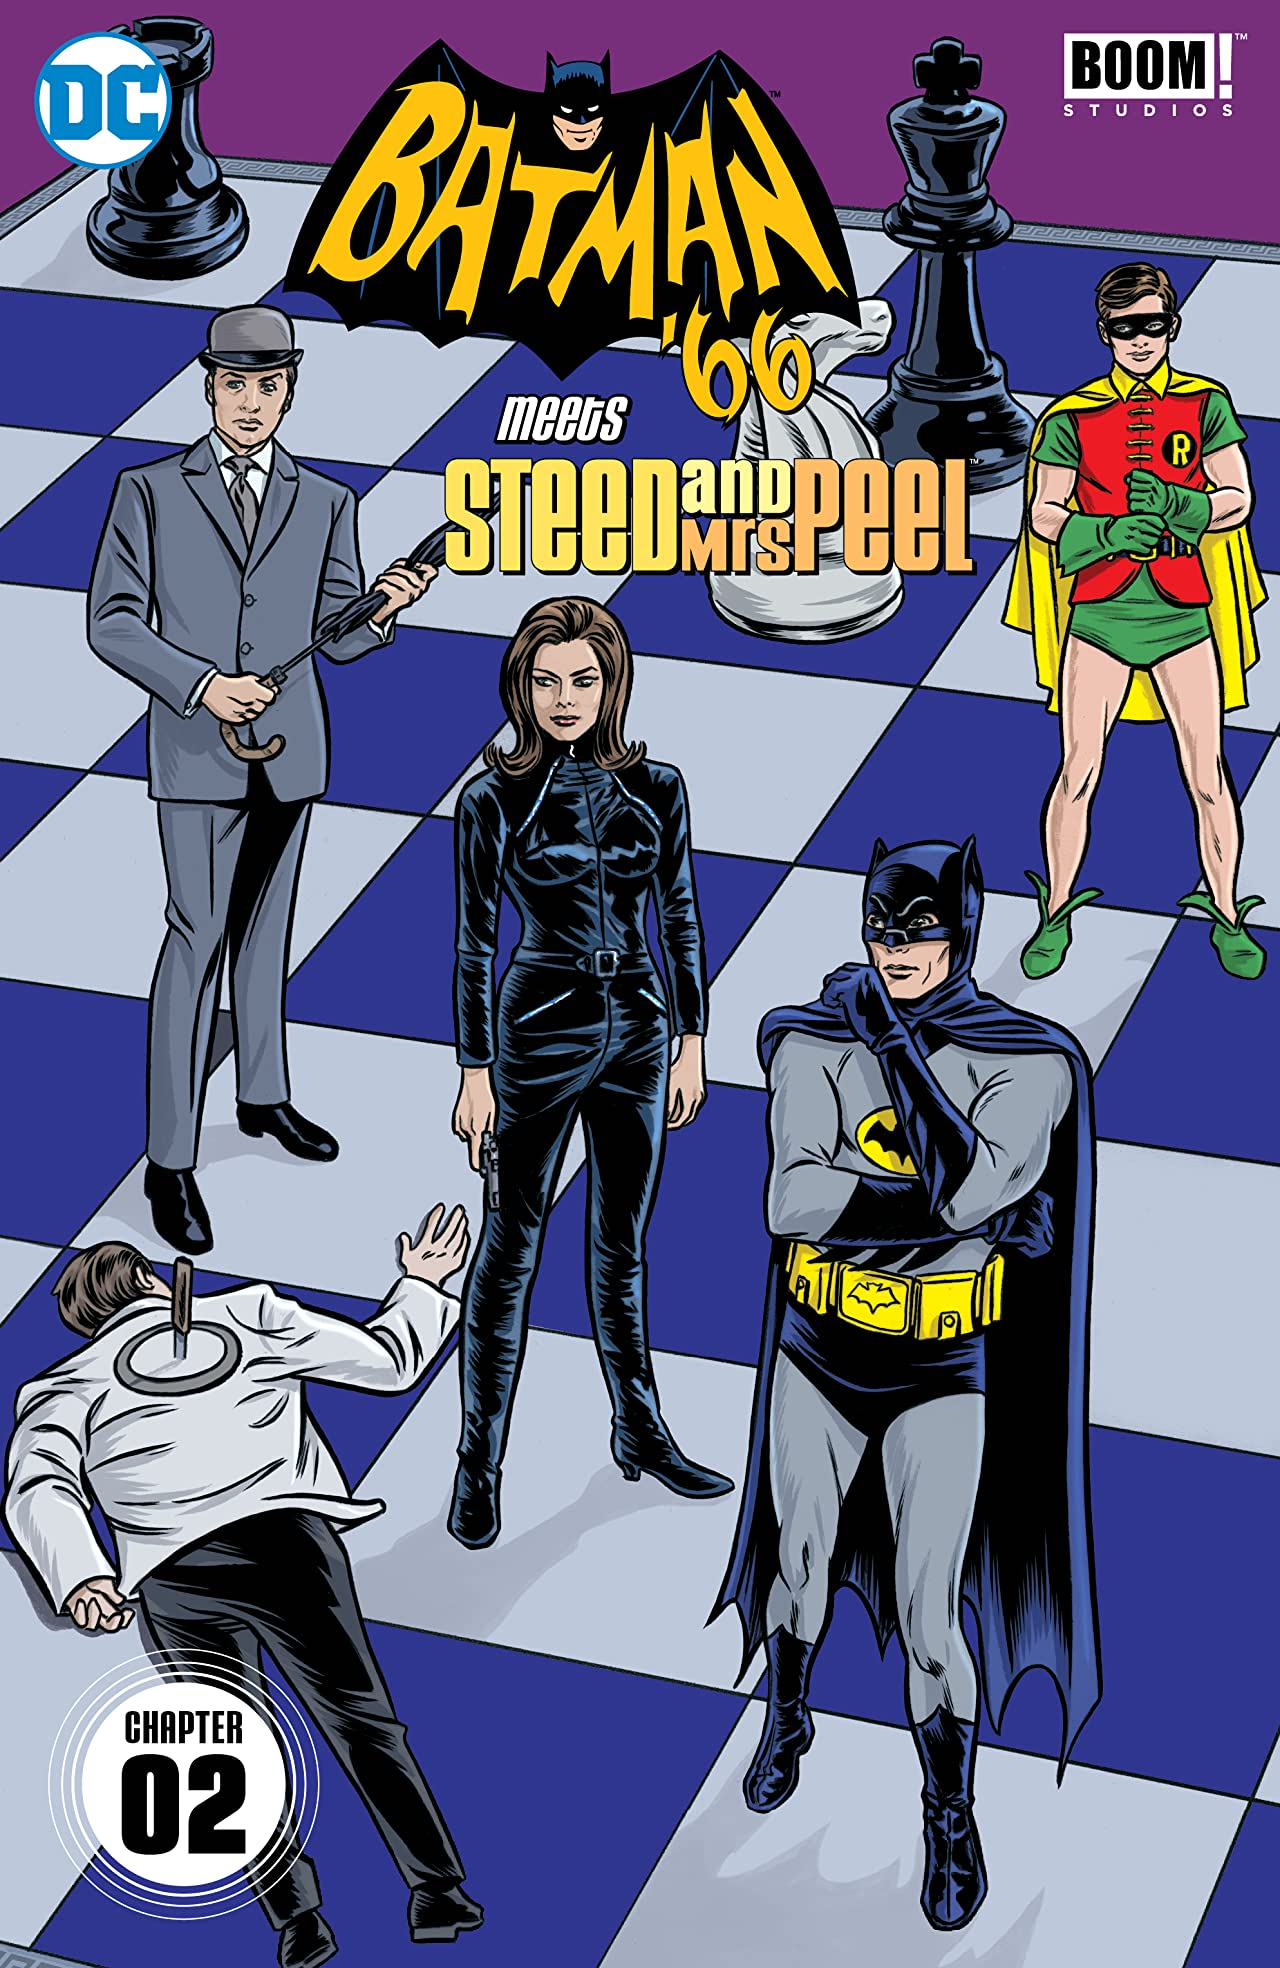 Batman '66 Meets Steed and Mrs Peel (2016) #2